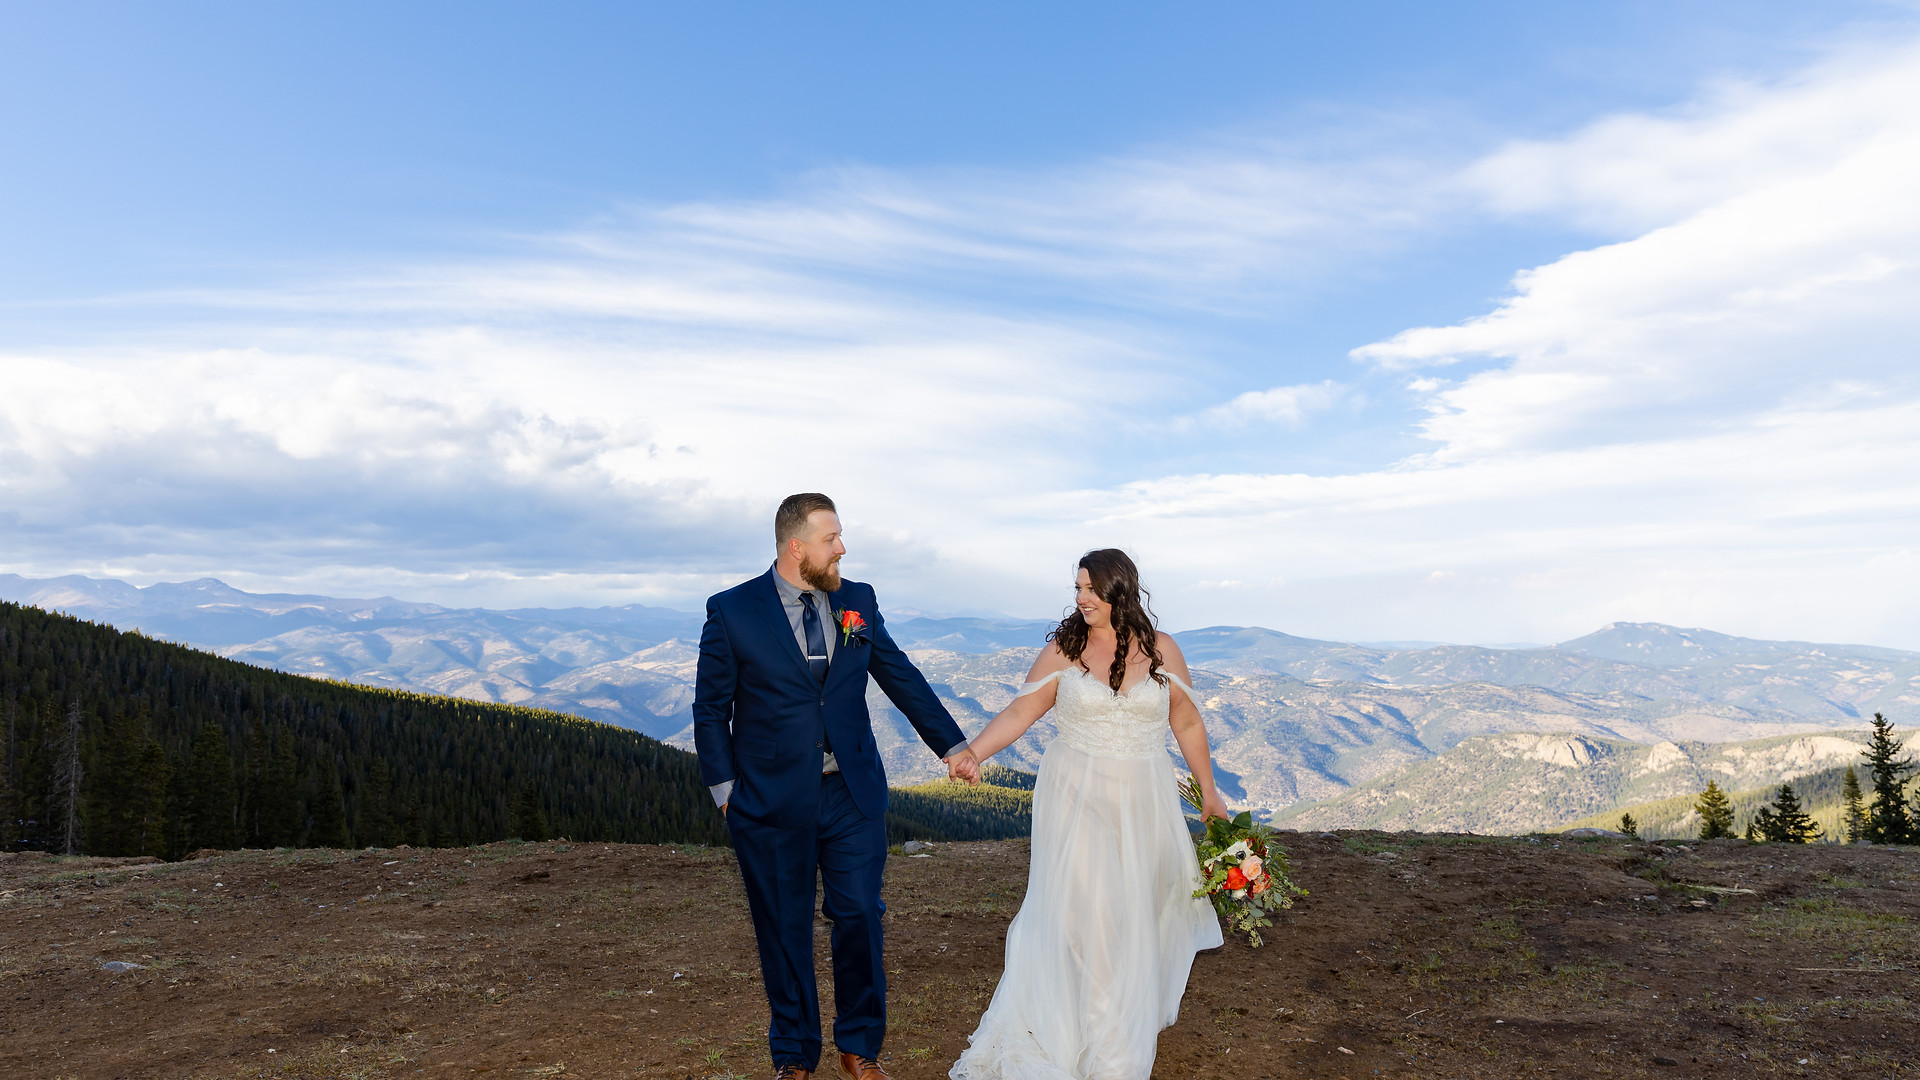 Abbie + Cody - Colorado WEDDING Photogra